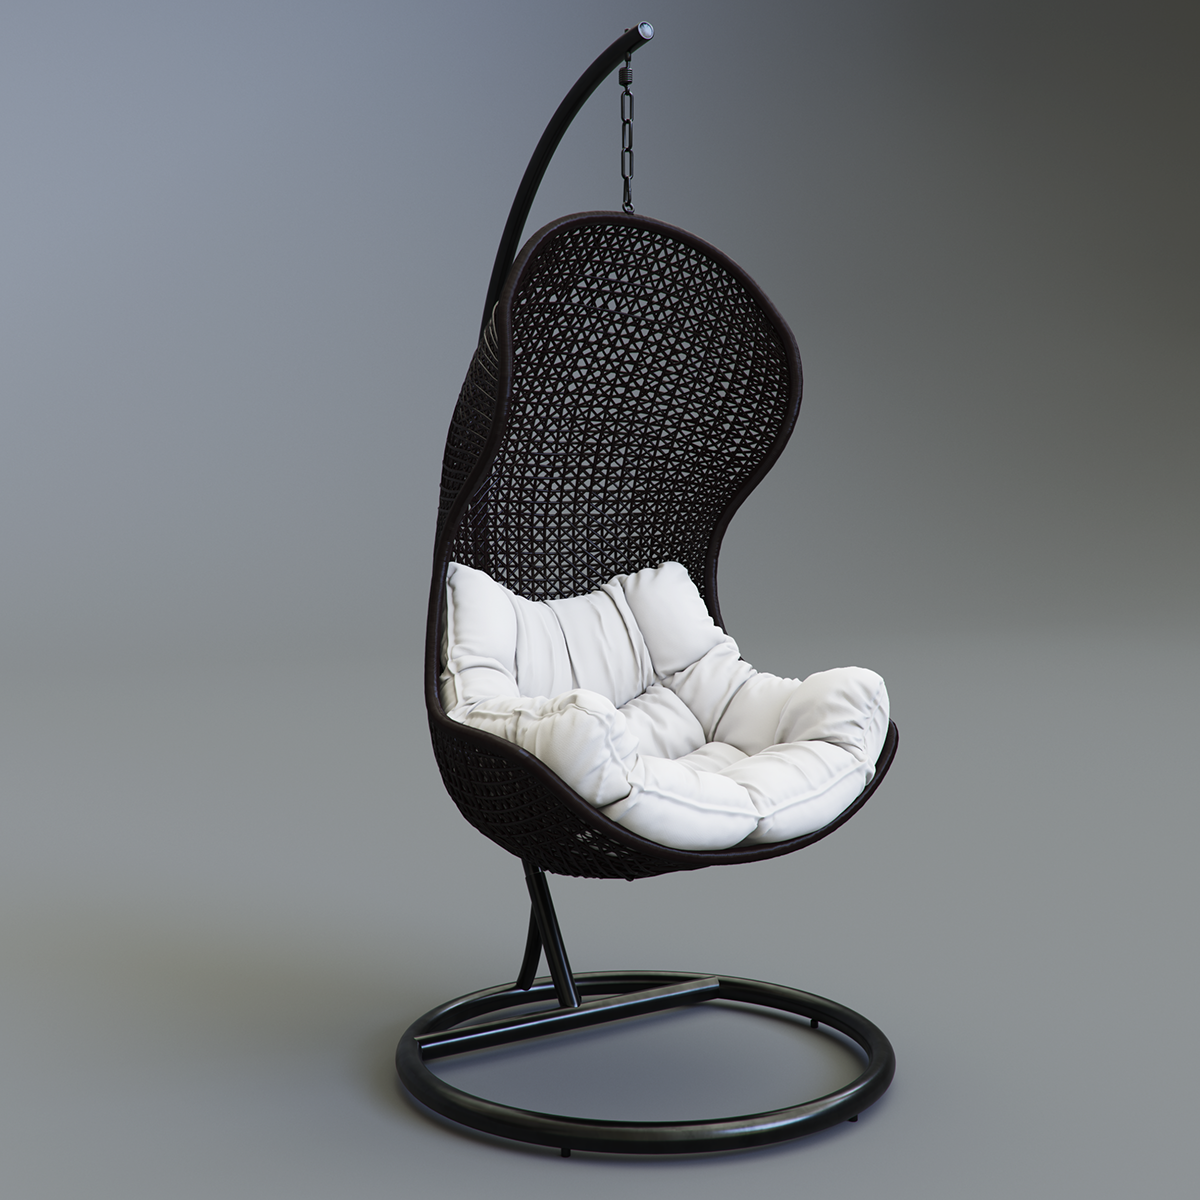 Parlay Swing Chair - We are featuring a garden swing modelled by Kirill Vill he is a very talented artist and 3D modeller. Go check him out on behance! It's for free, but it's a very high detailed model created in MarvelousDesigner.  Very useful model for your exterior visuals. Click the button below to download. Don't forget to like share and subscribe to MockupRender.